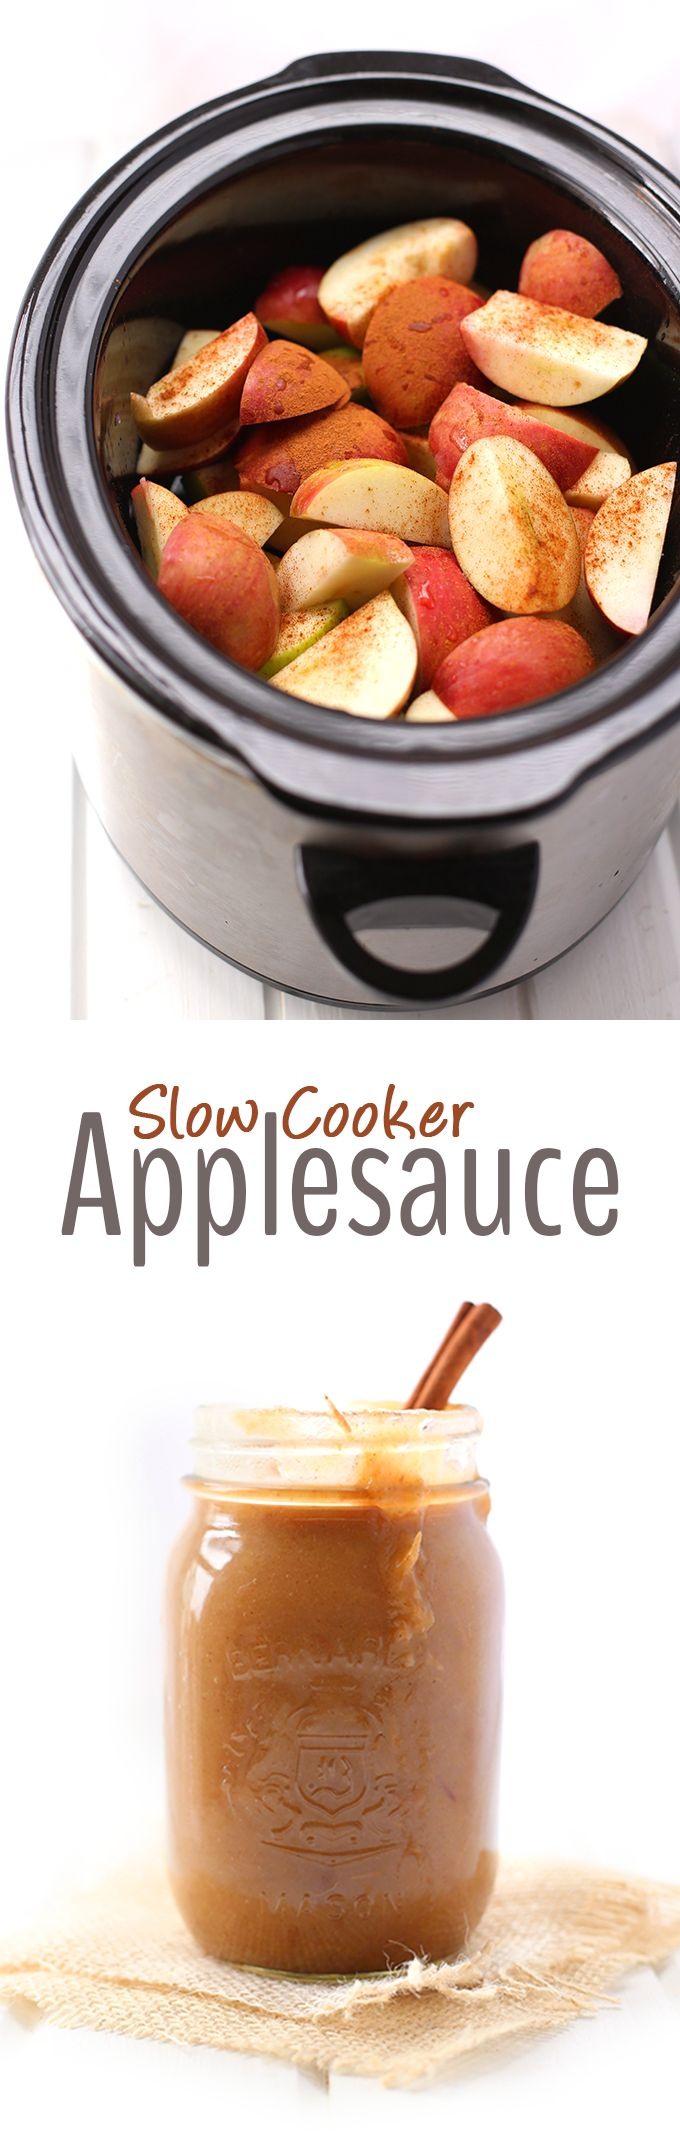 All you need are two ingredients (apples and cinnamon) and your slow cooker to…